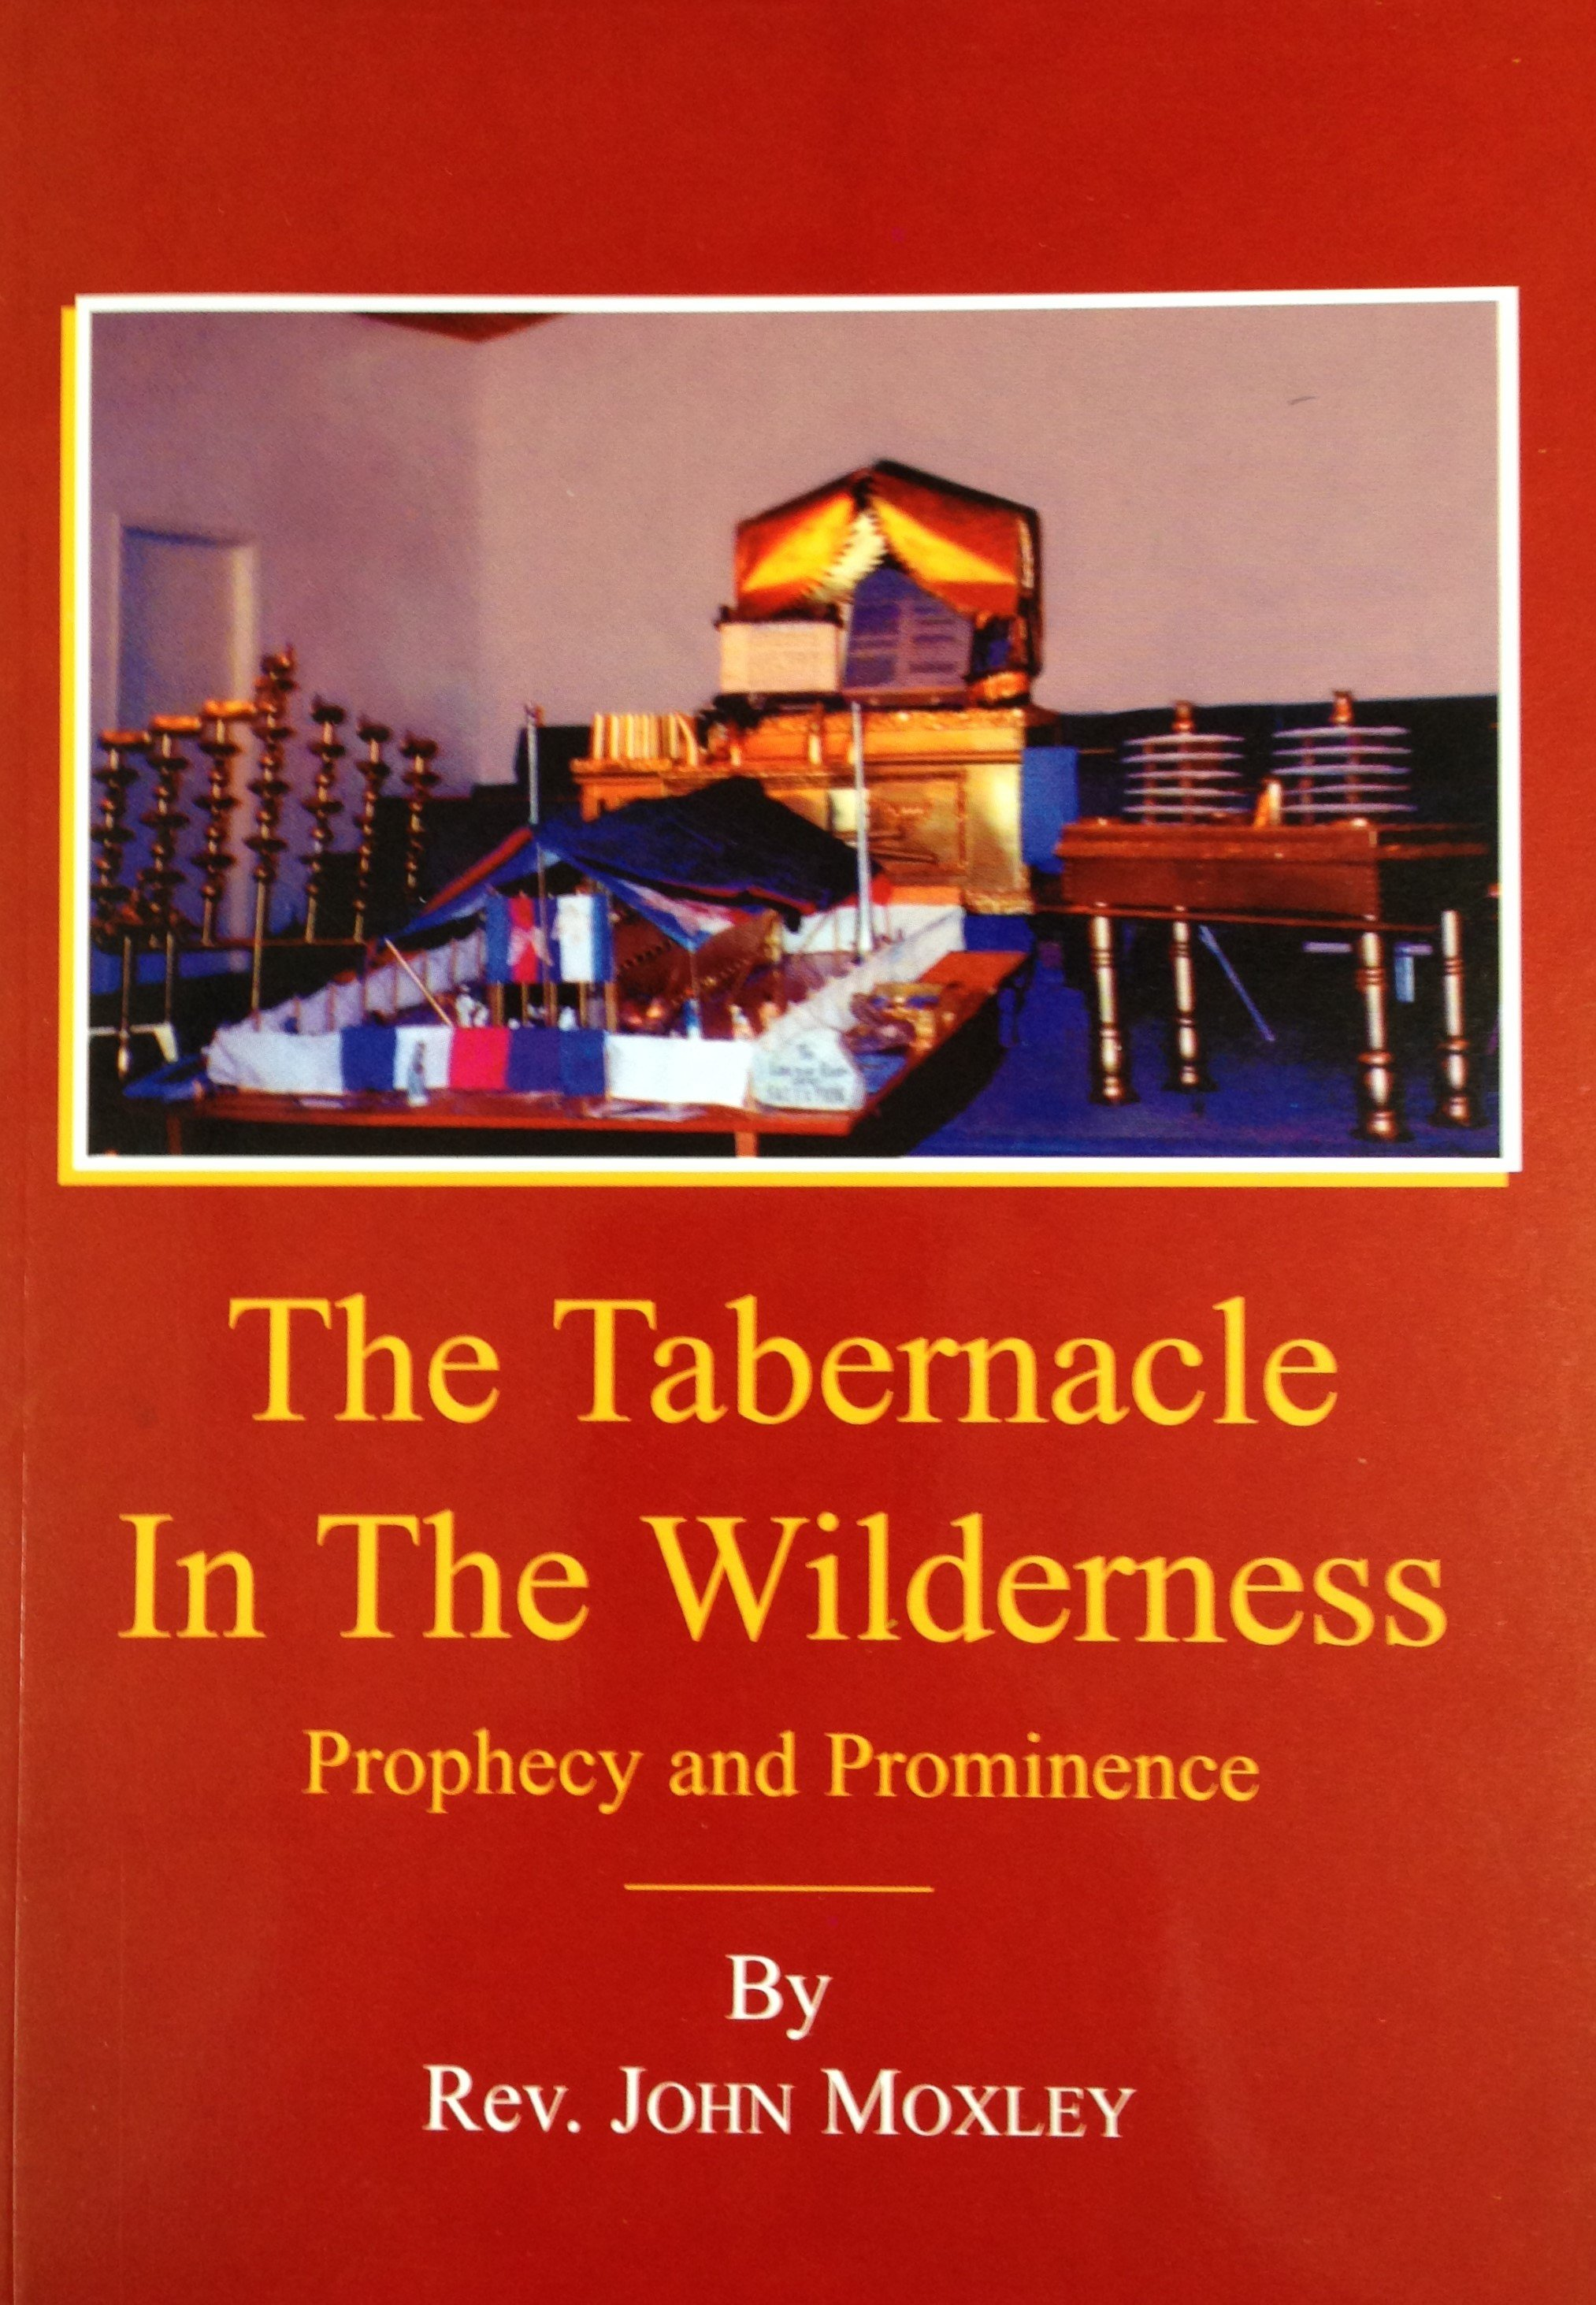 The Tabernacle in The Wilderness:  Prophecy and Prominence by John Moxley 00054